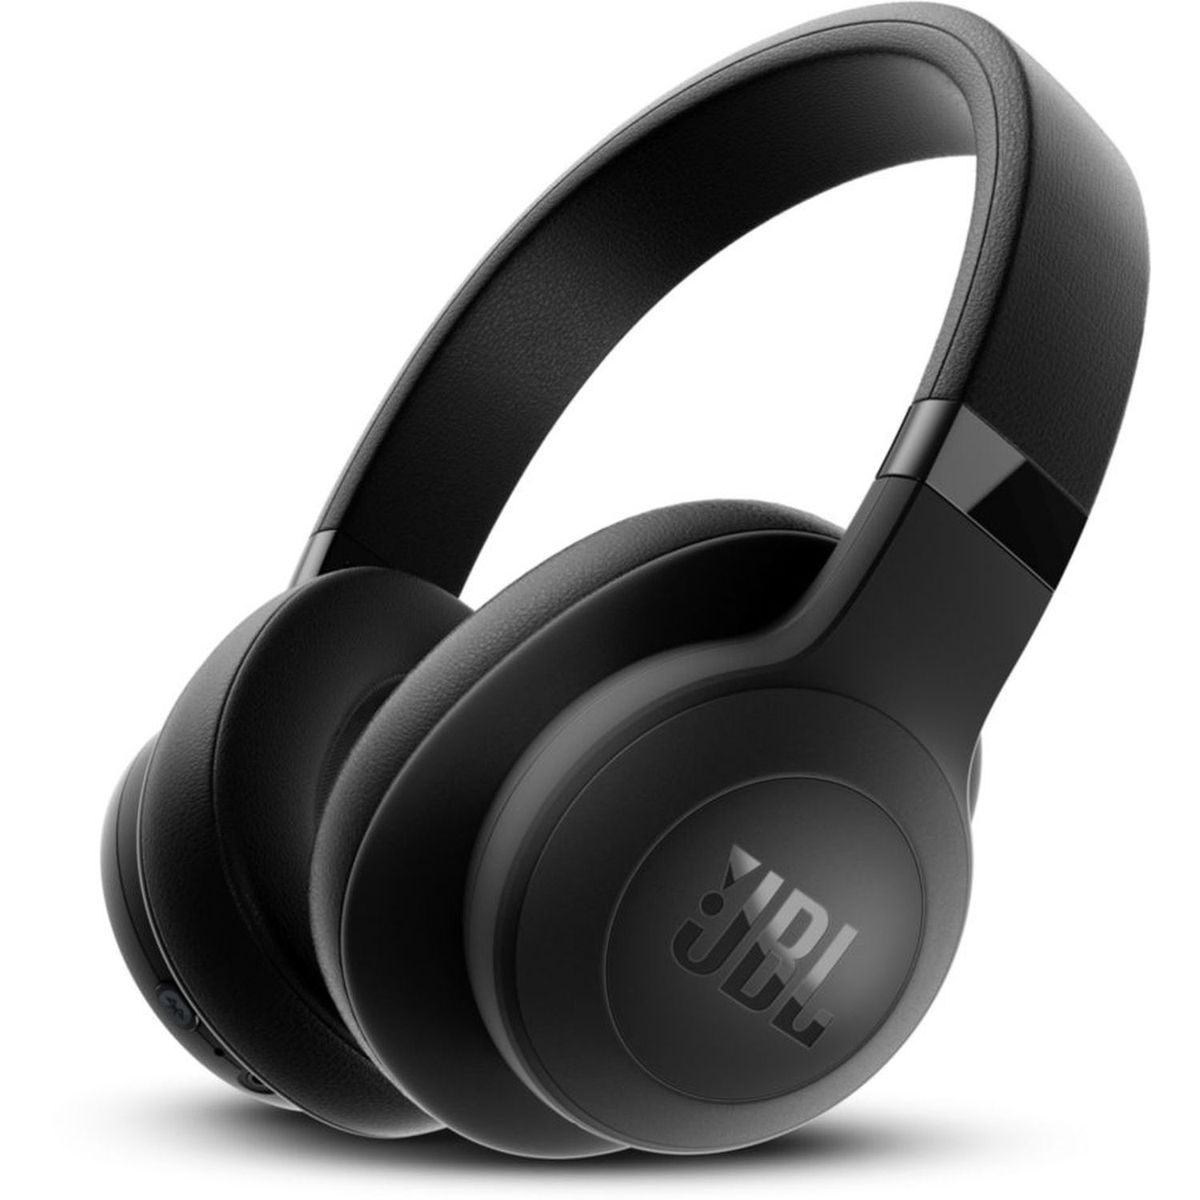 Casque audio Bluetooth - Noir - E500BT